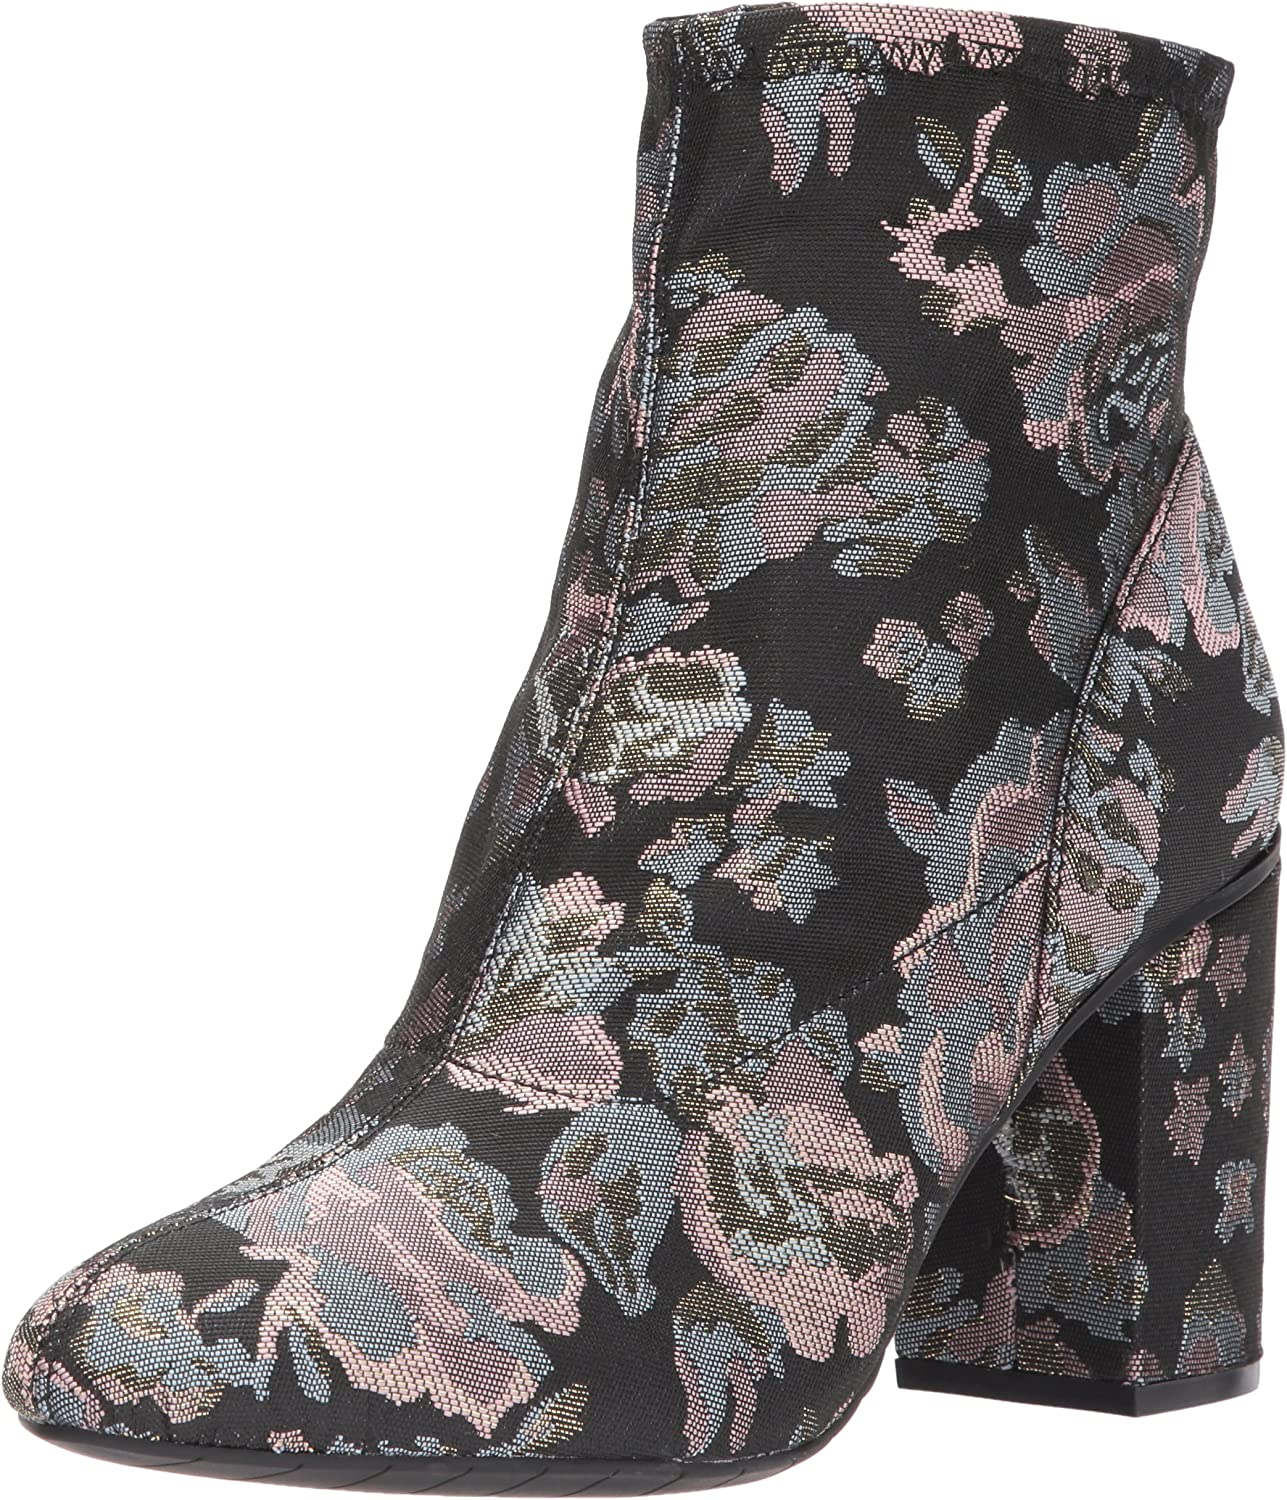 Kenneth Cole REACTION Womens Time for Fun Ankle Bootie with Sock Shaft High Heel Fb Ankle Bootie